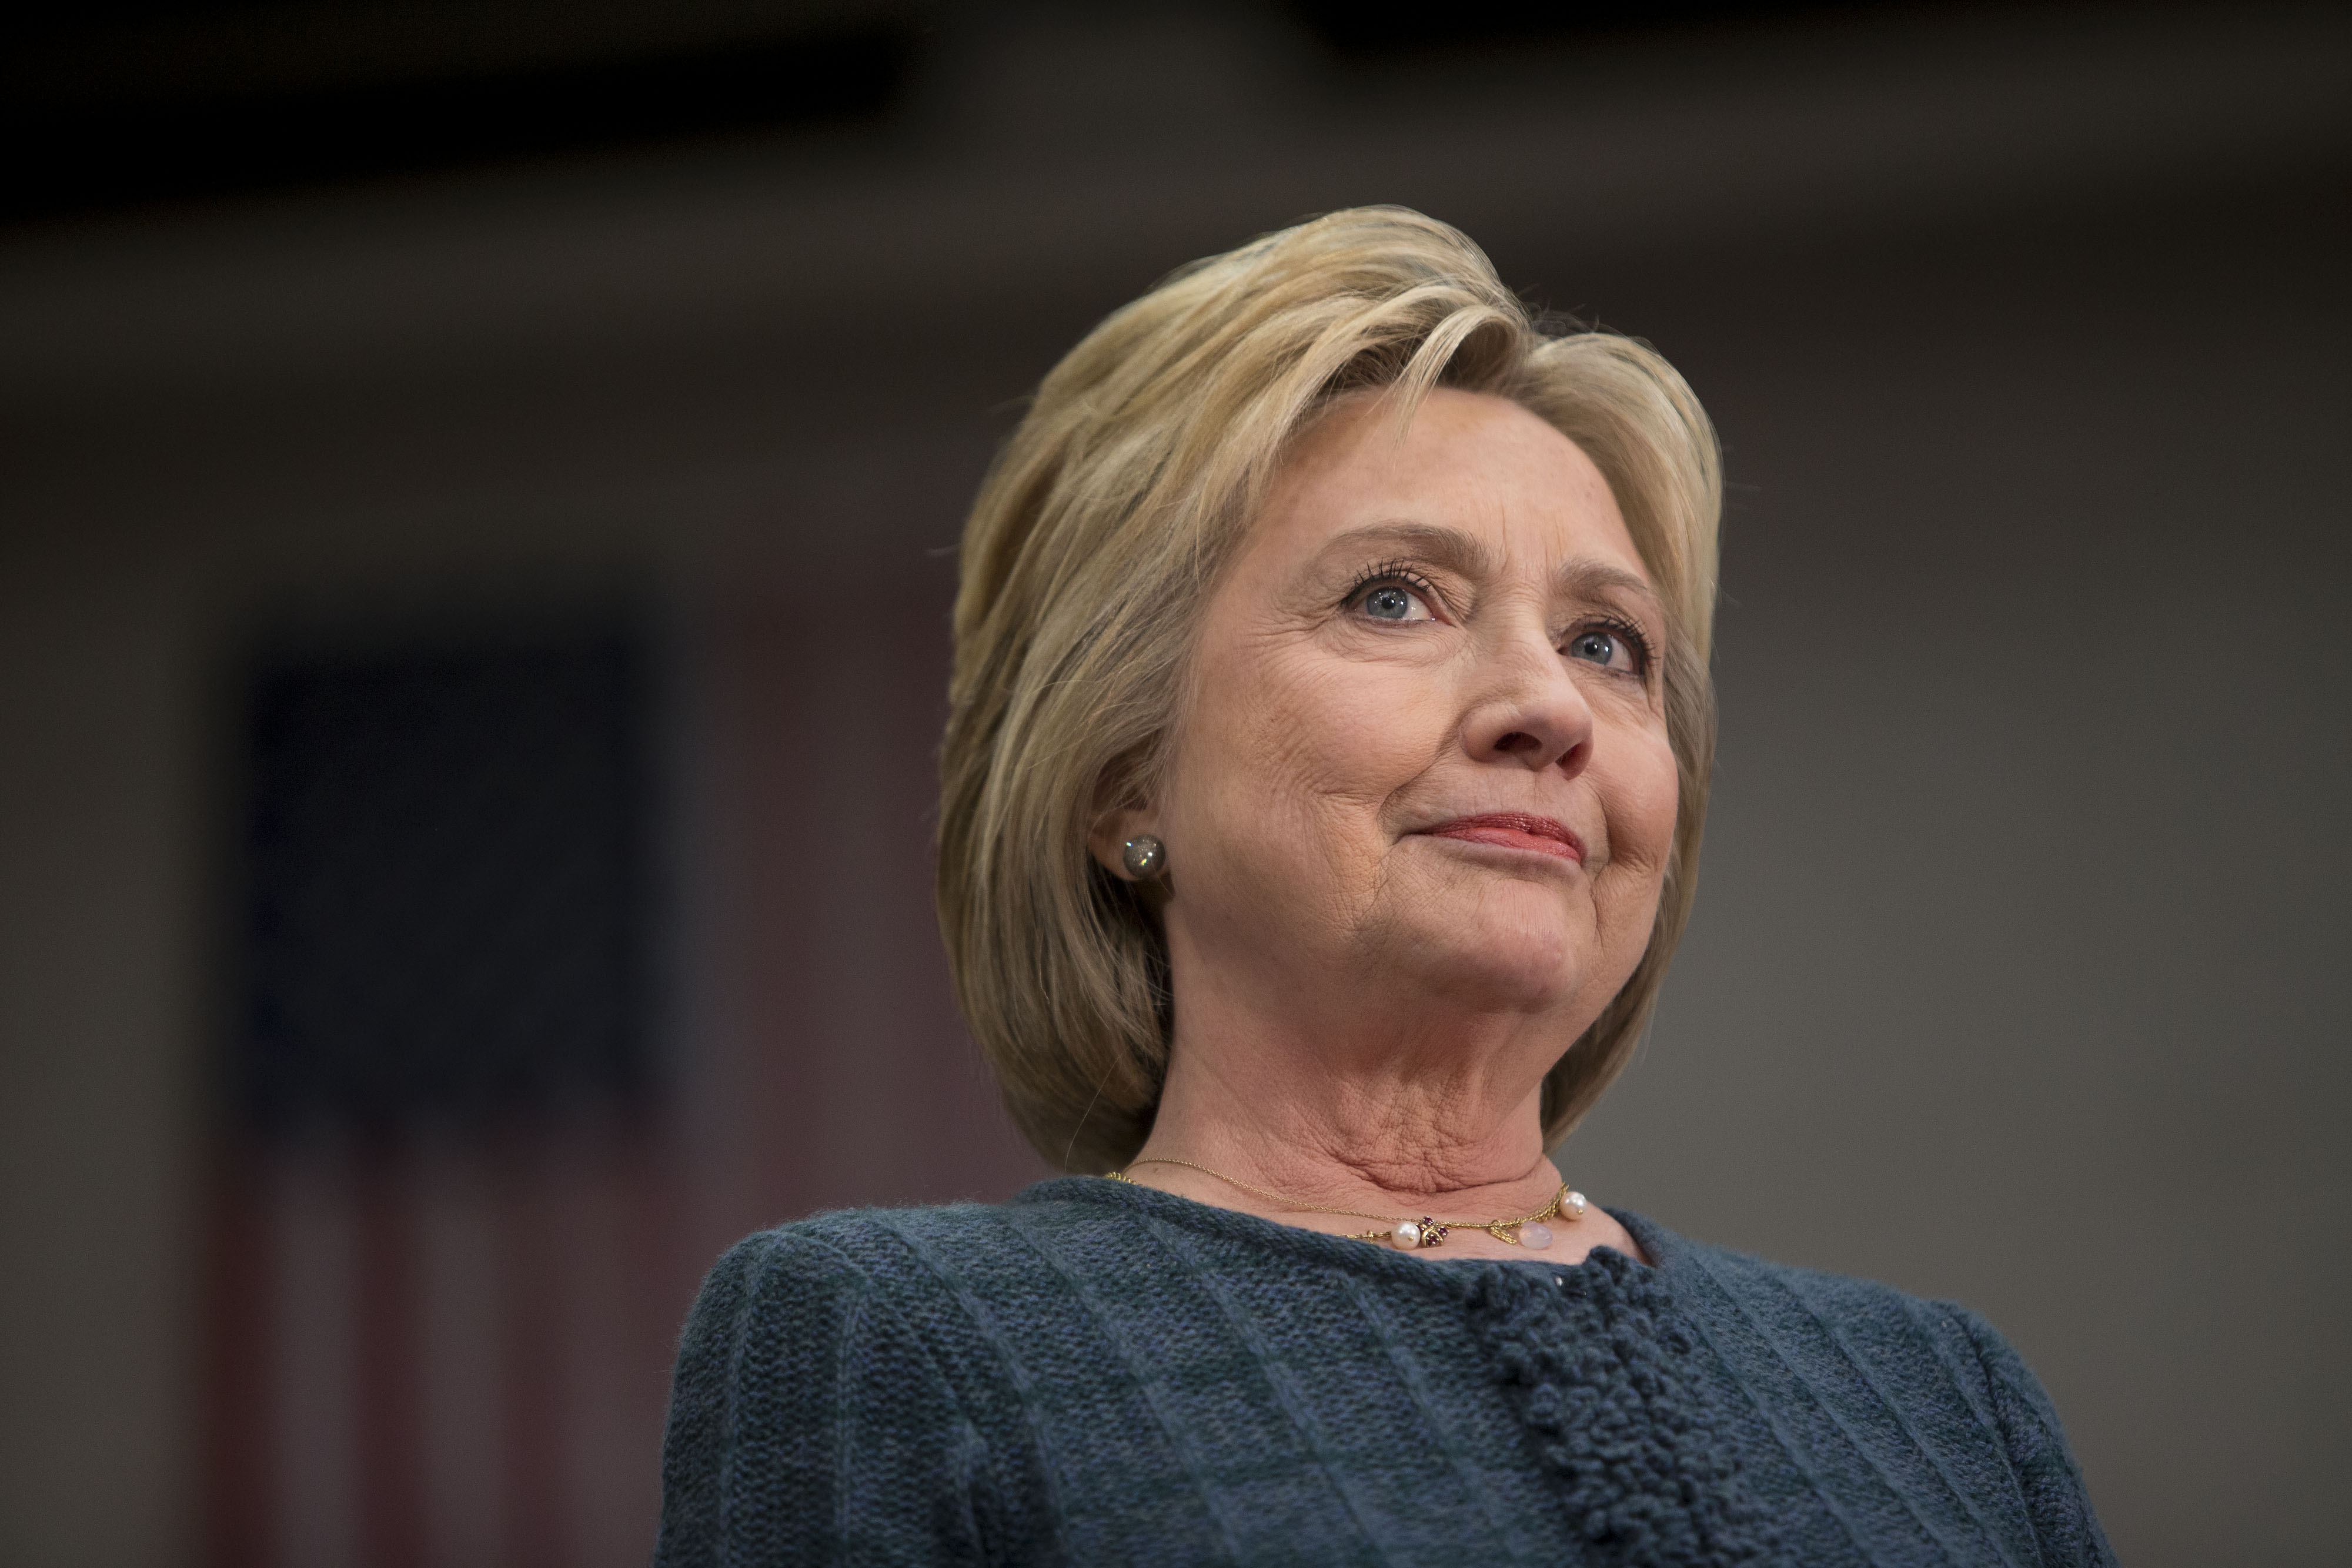 Hillary Clinton at a campaign event in Concord, N.H. on Feb. 6, 2016.